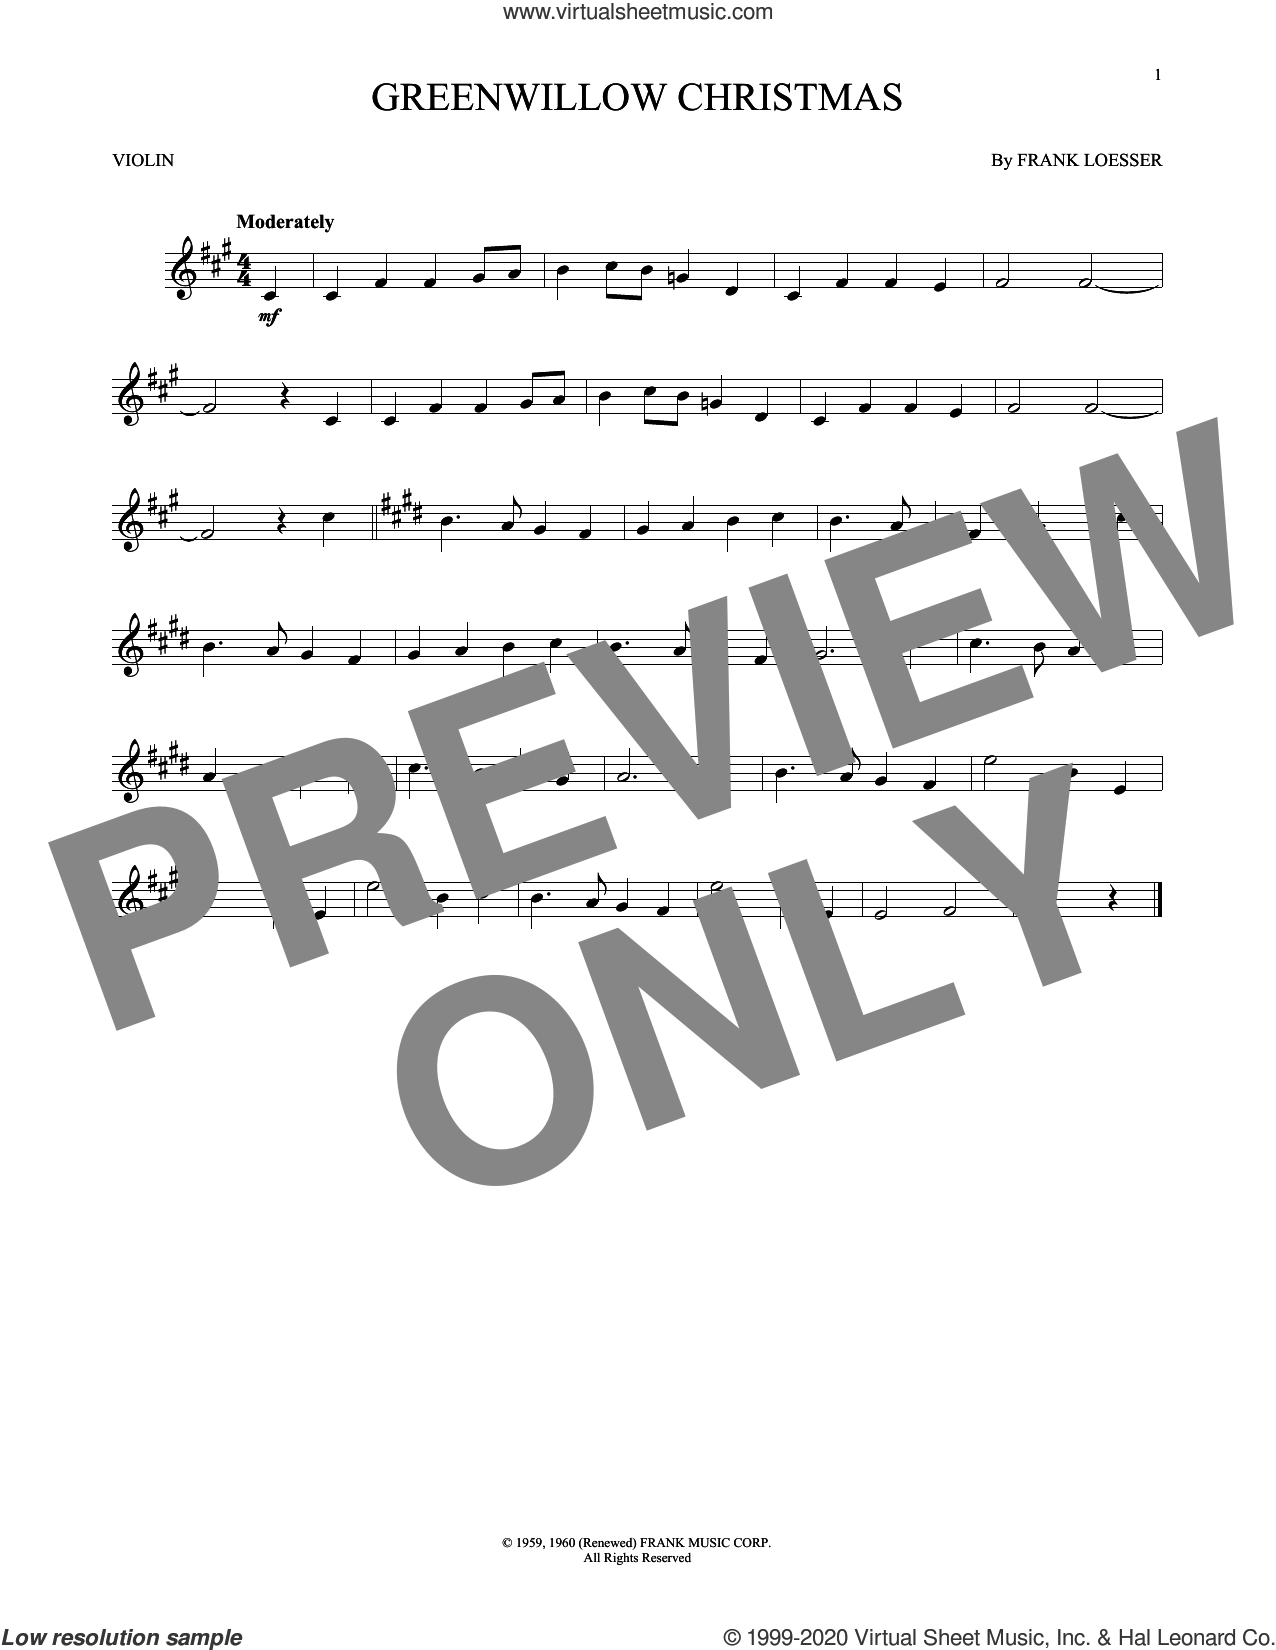 Greenwillow Christmas sheet music for violin solo by Frank Loesser, intermediate skill level